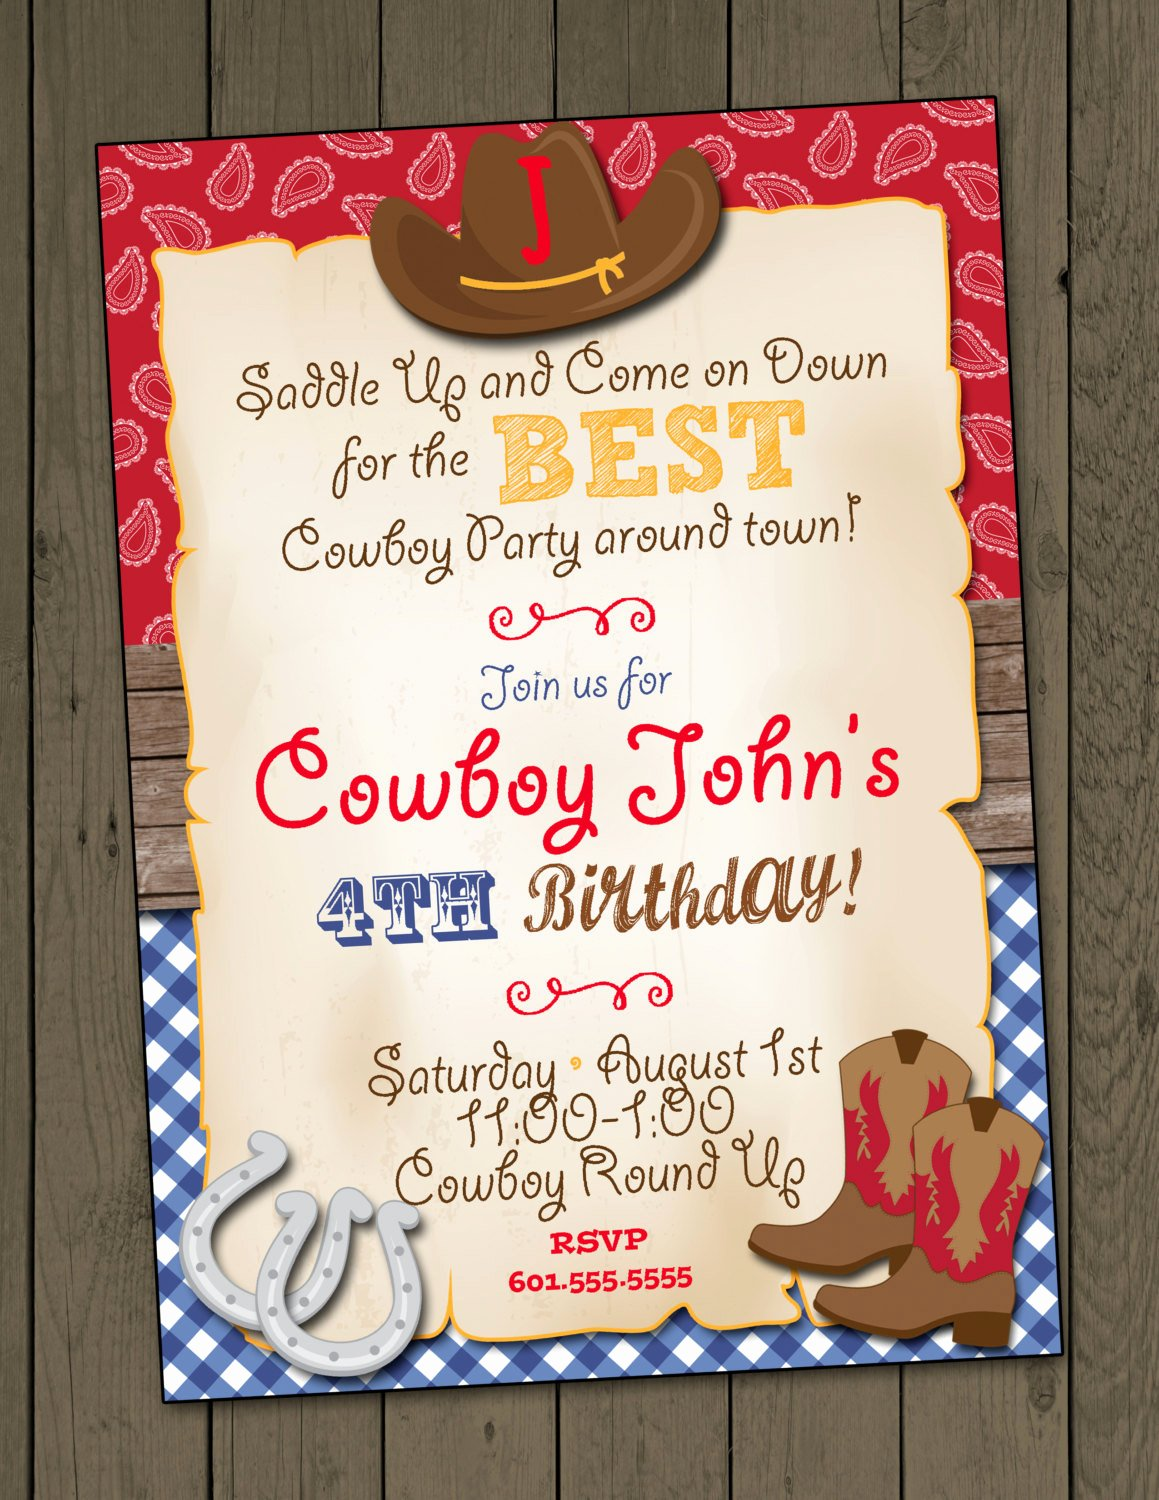 Cowboy Invitations Template Free Best Of Cowboy Birthday Party Invitation Cowboy Invitation Digital